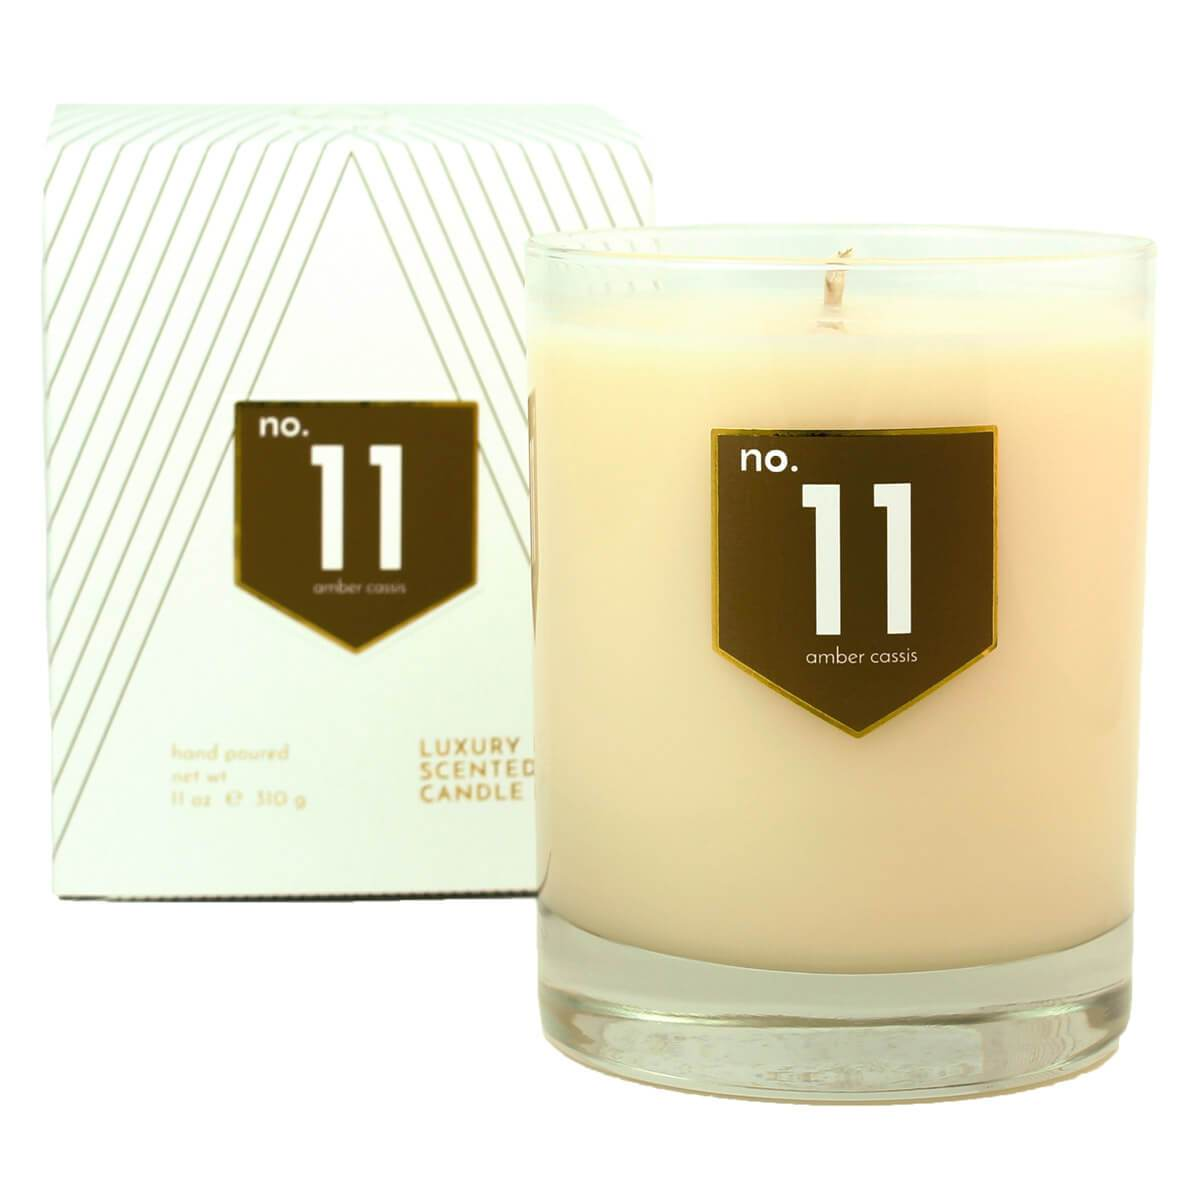 ACDC Candles No. 11 Amber Cinnamon Scented Soy Candle